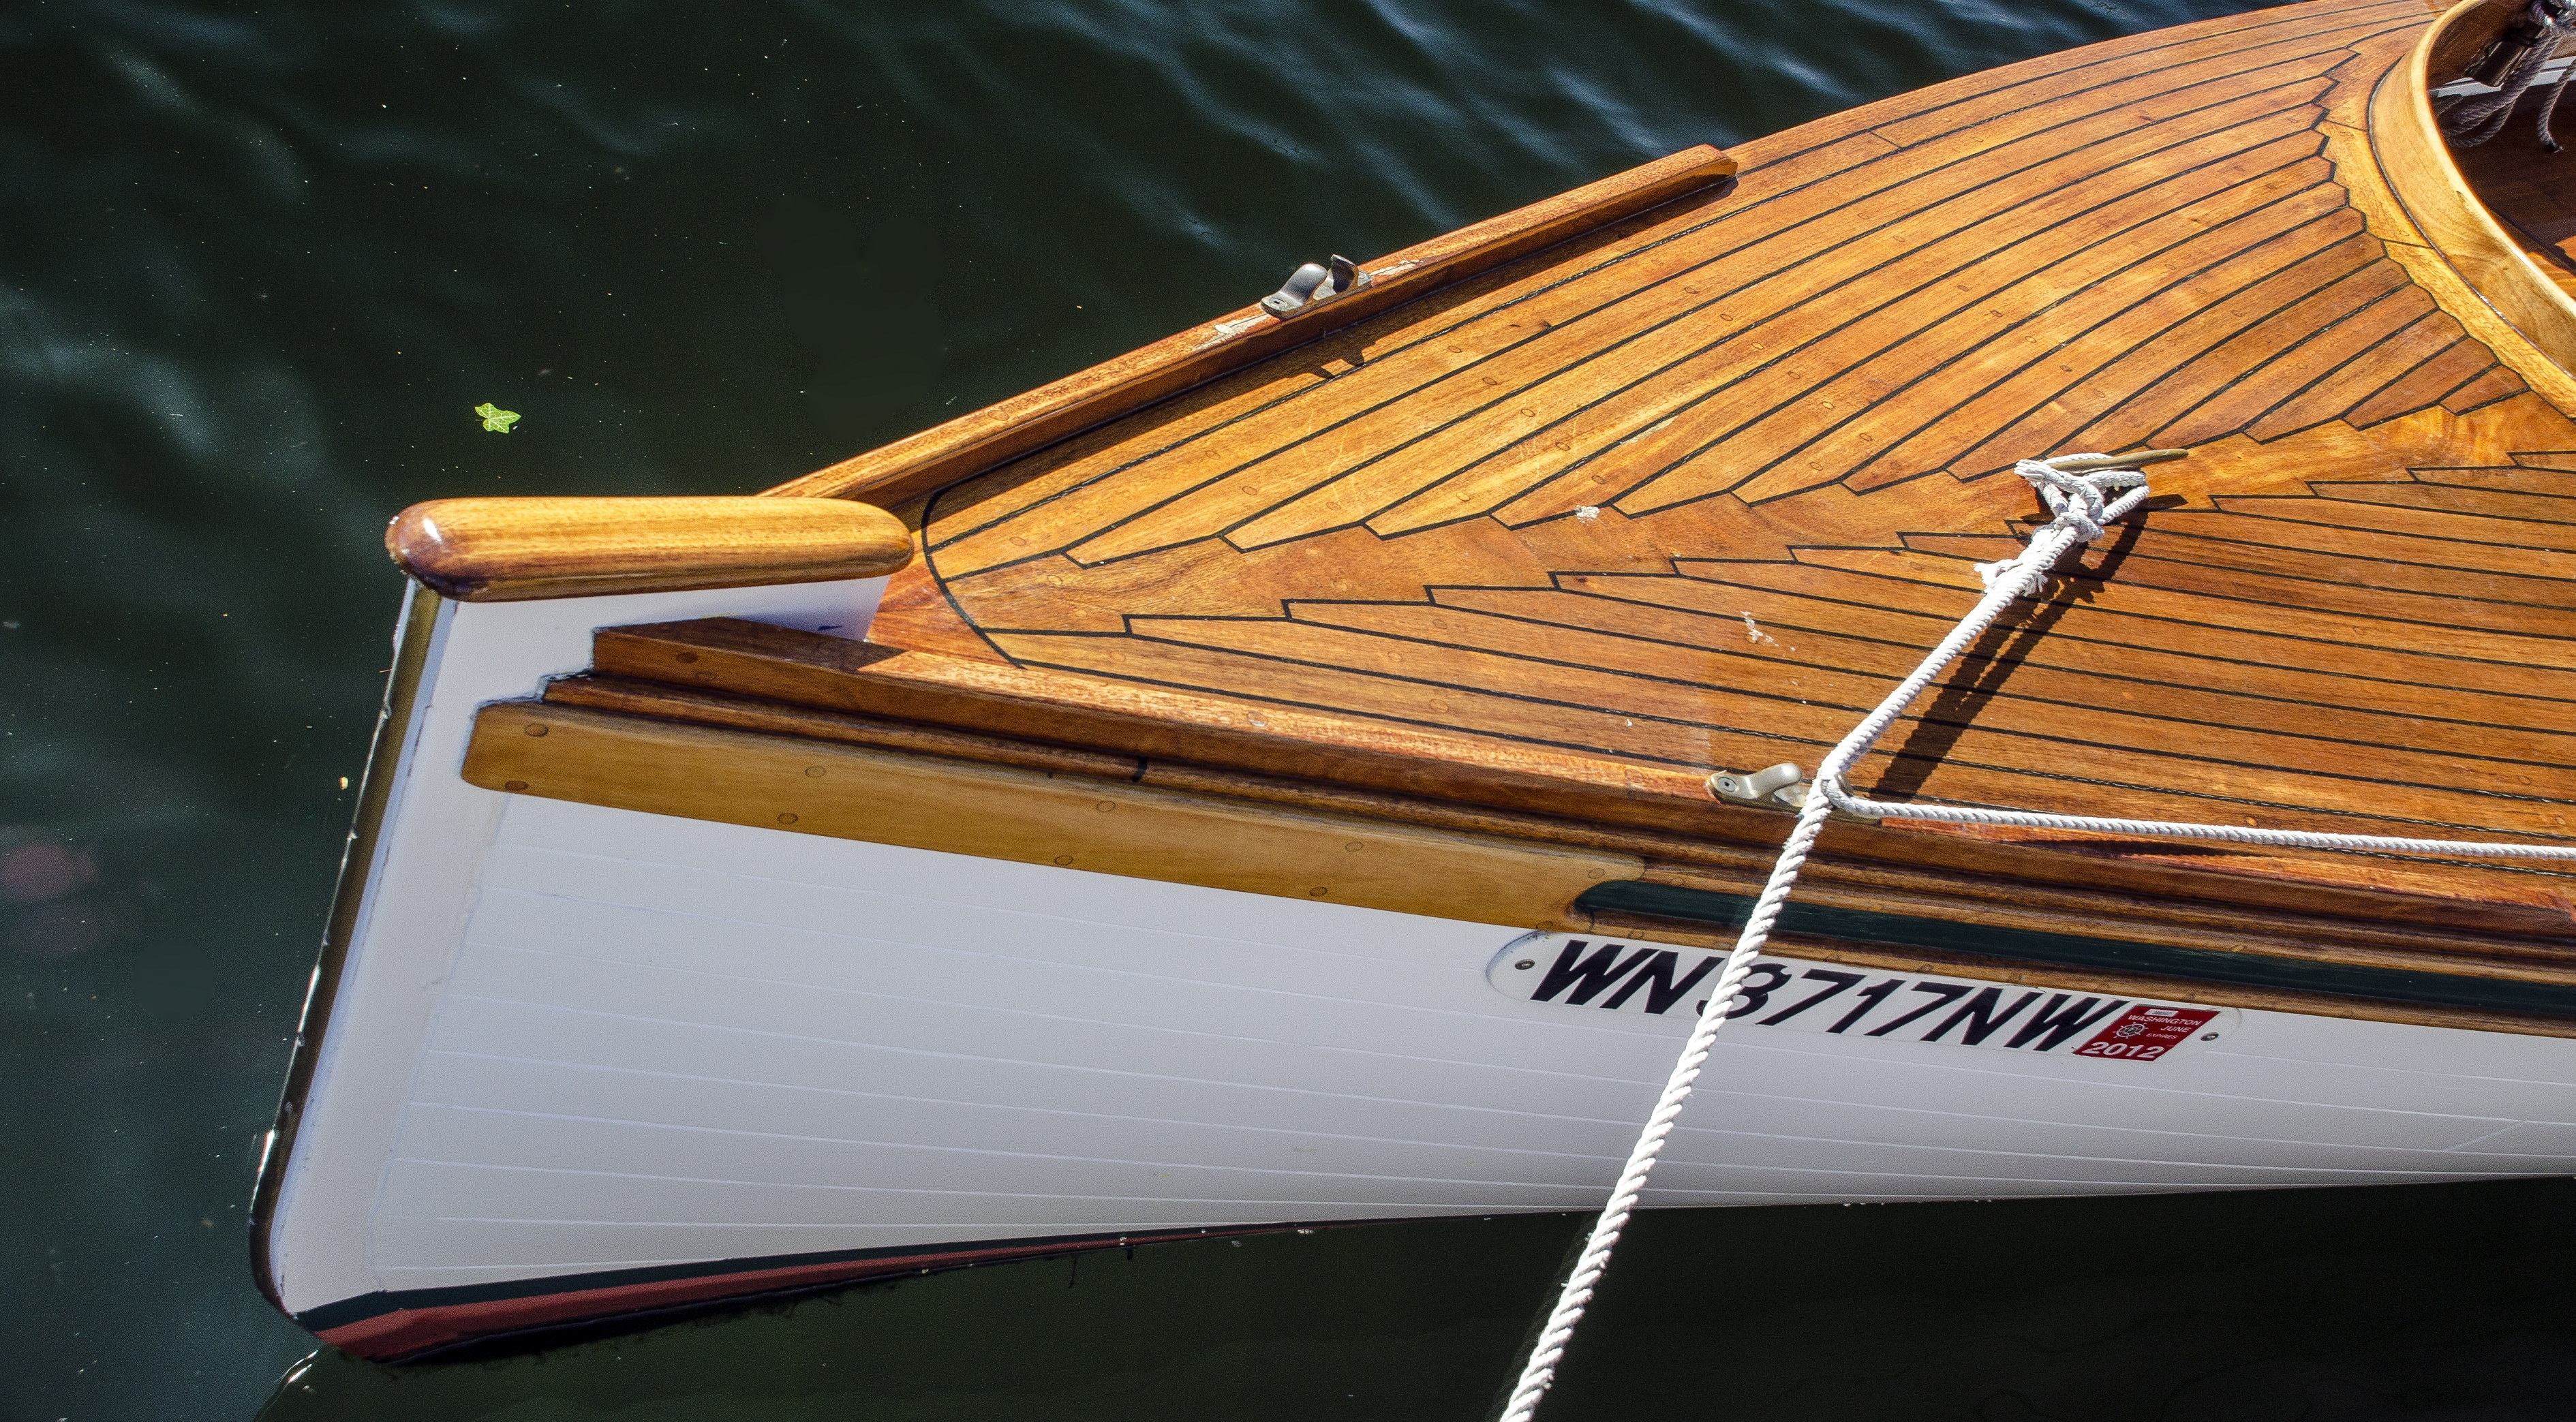 How to survey wooden boats: Image 3